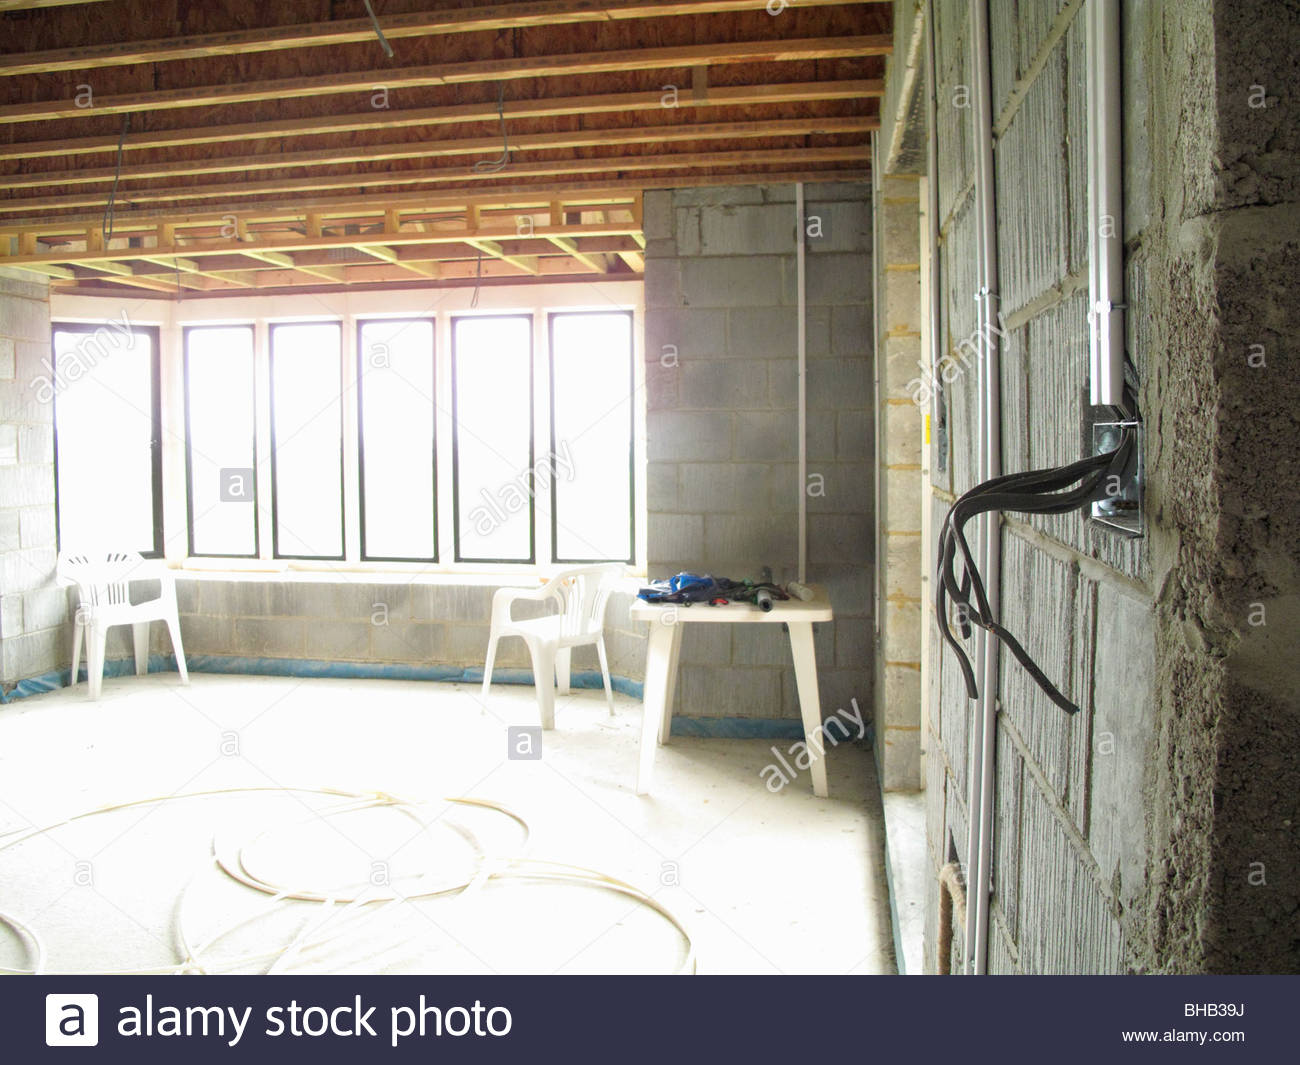 Exposed Wires Stock Photos Images Alamy Wiring A House Electrical In Under Construction Image